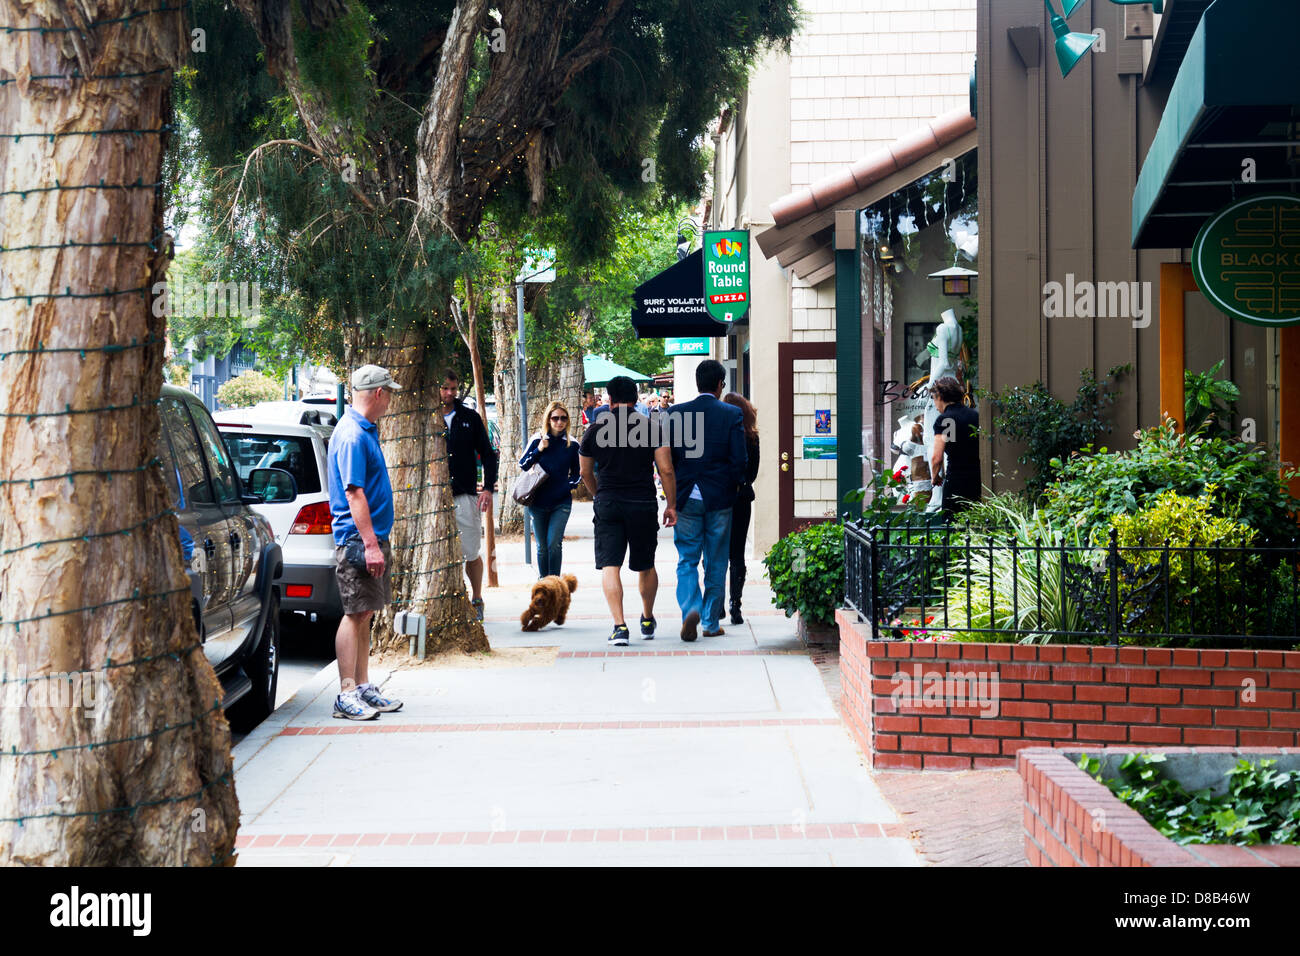 Locals And Tourists Walking On The Sidewalk In Downtown Los Gatos,  California.